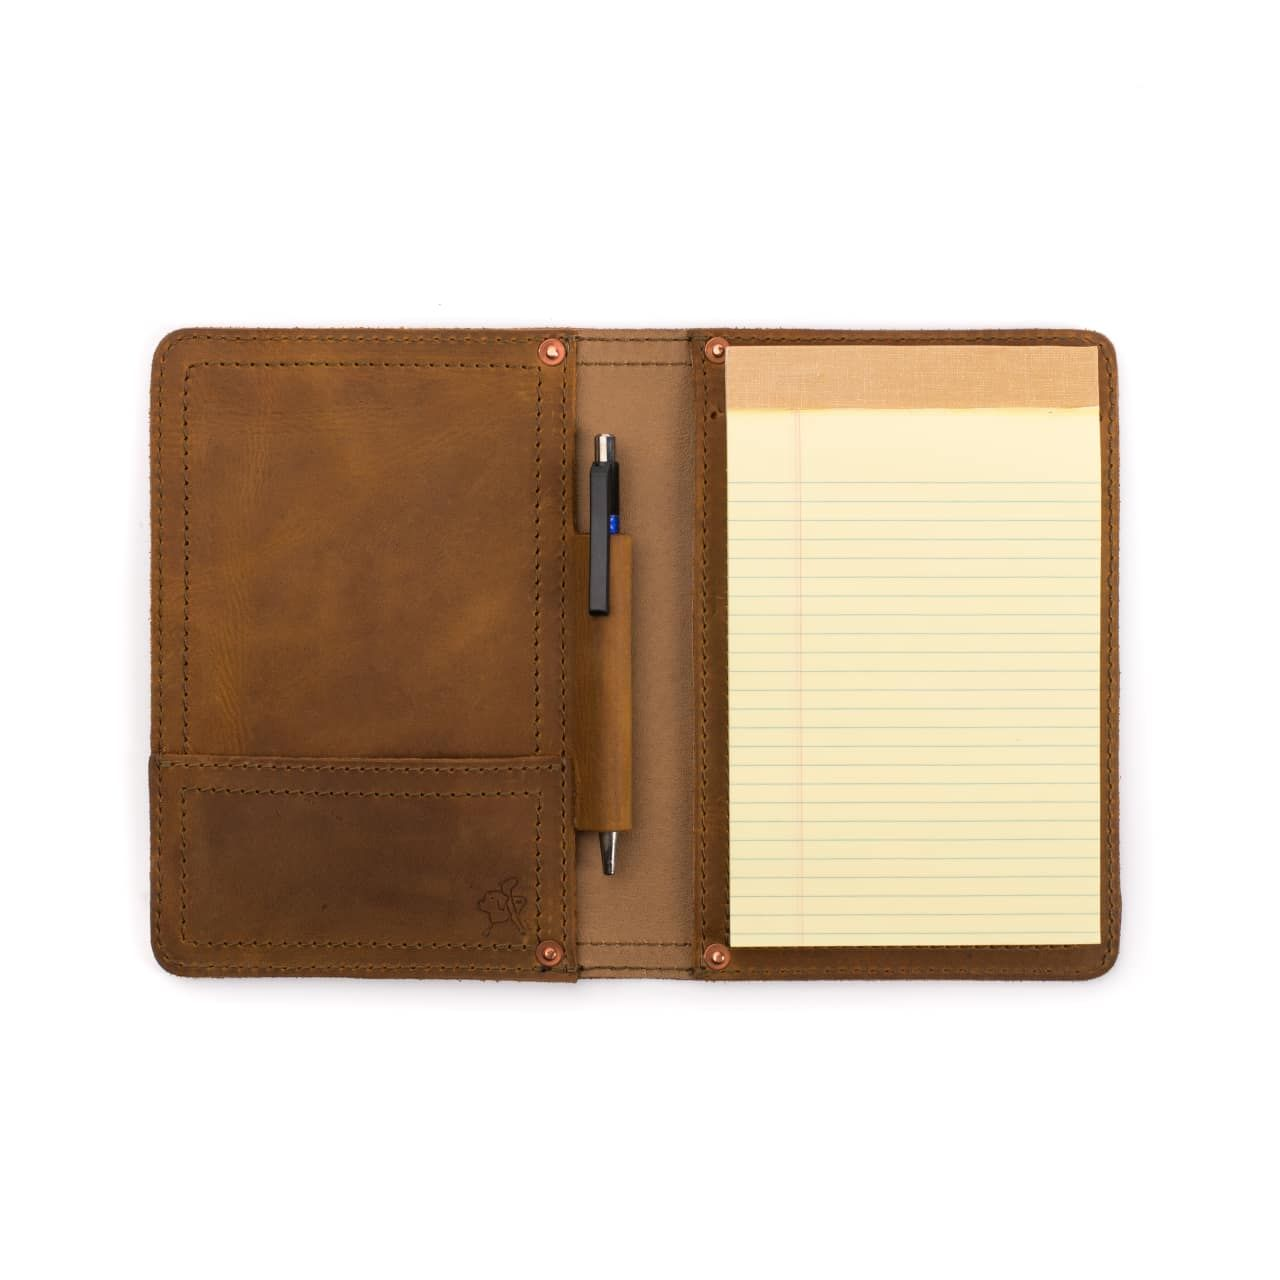 Notepad in leather notepad cover small in tobacco leather